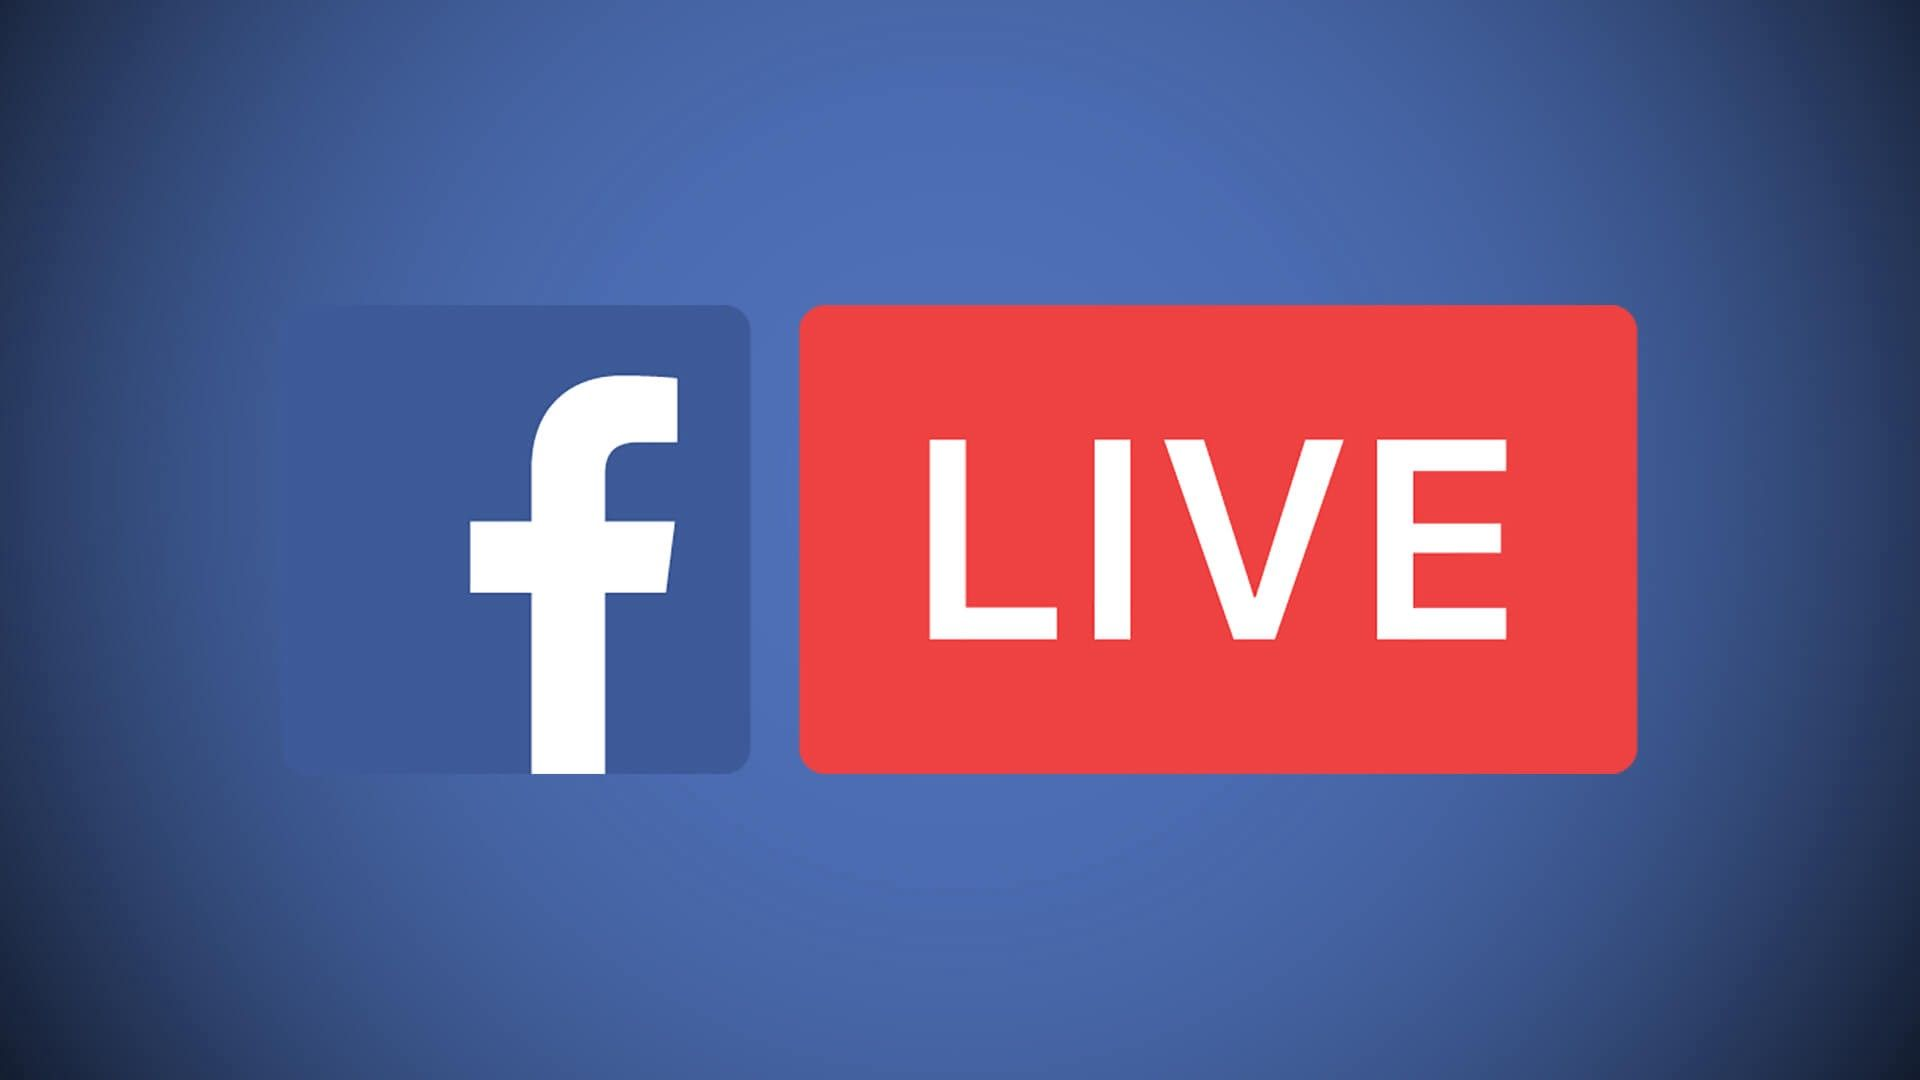 HOW TO GET MORE FACEBOOK EVENT JOINERS? 1. Optimize for